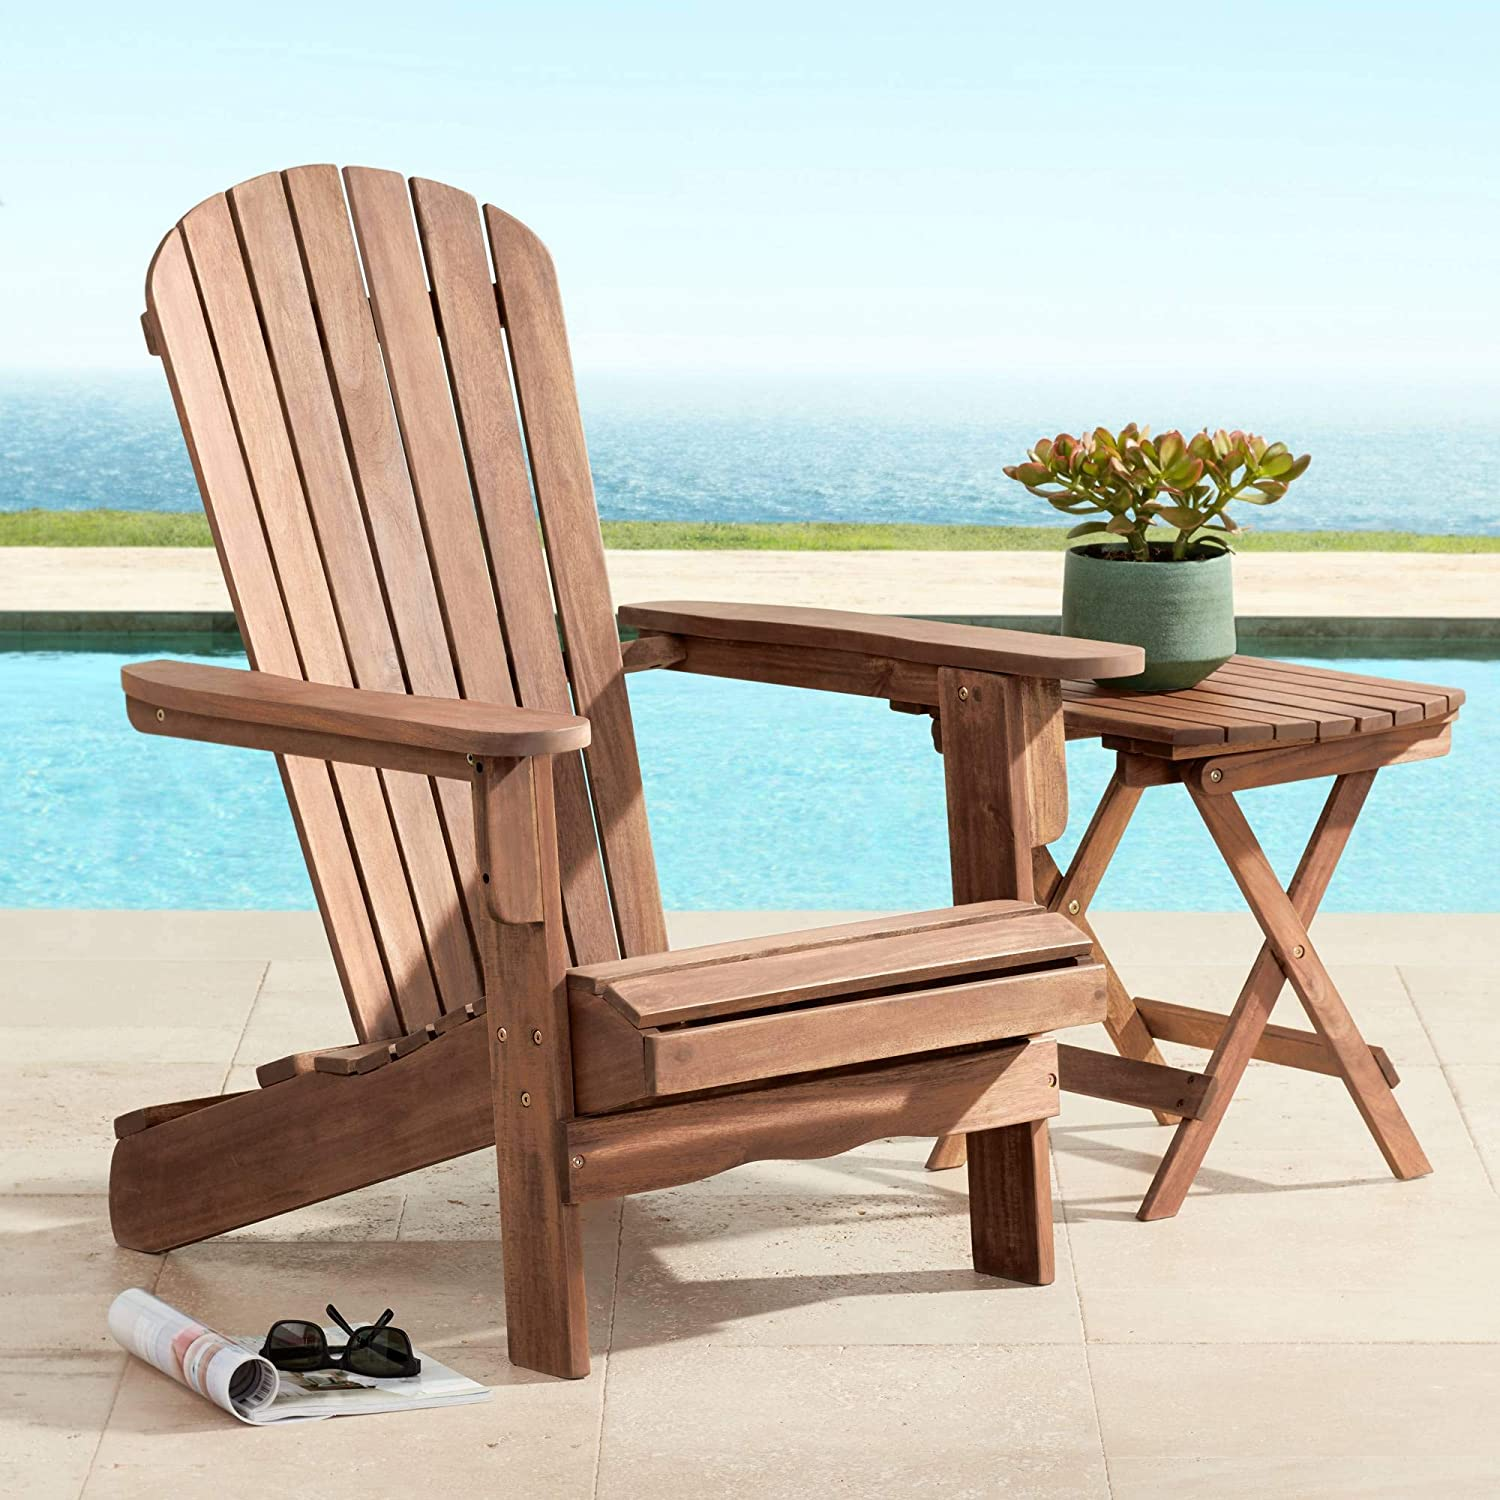 "Cape Cod 28 3/4"" Wide Natural Wood Adirondack Chair - Teal Island Designs : Garden & Outdoor"